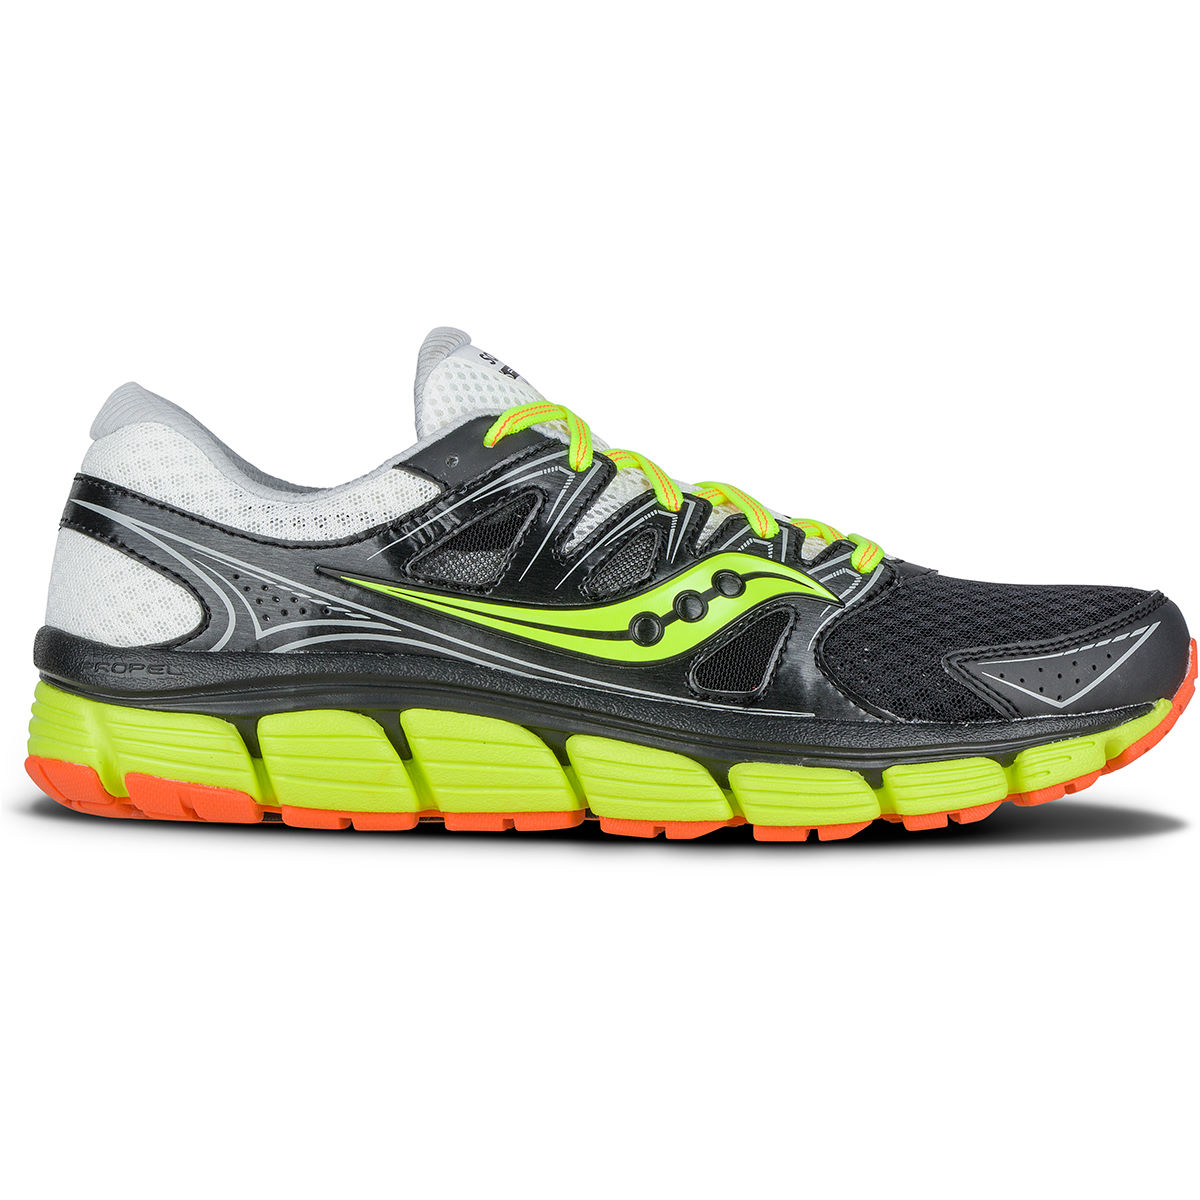 Saucony Propel Vista Shoes (AW16)   Cushion Running Shoes